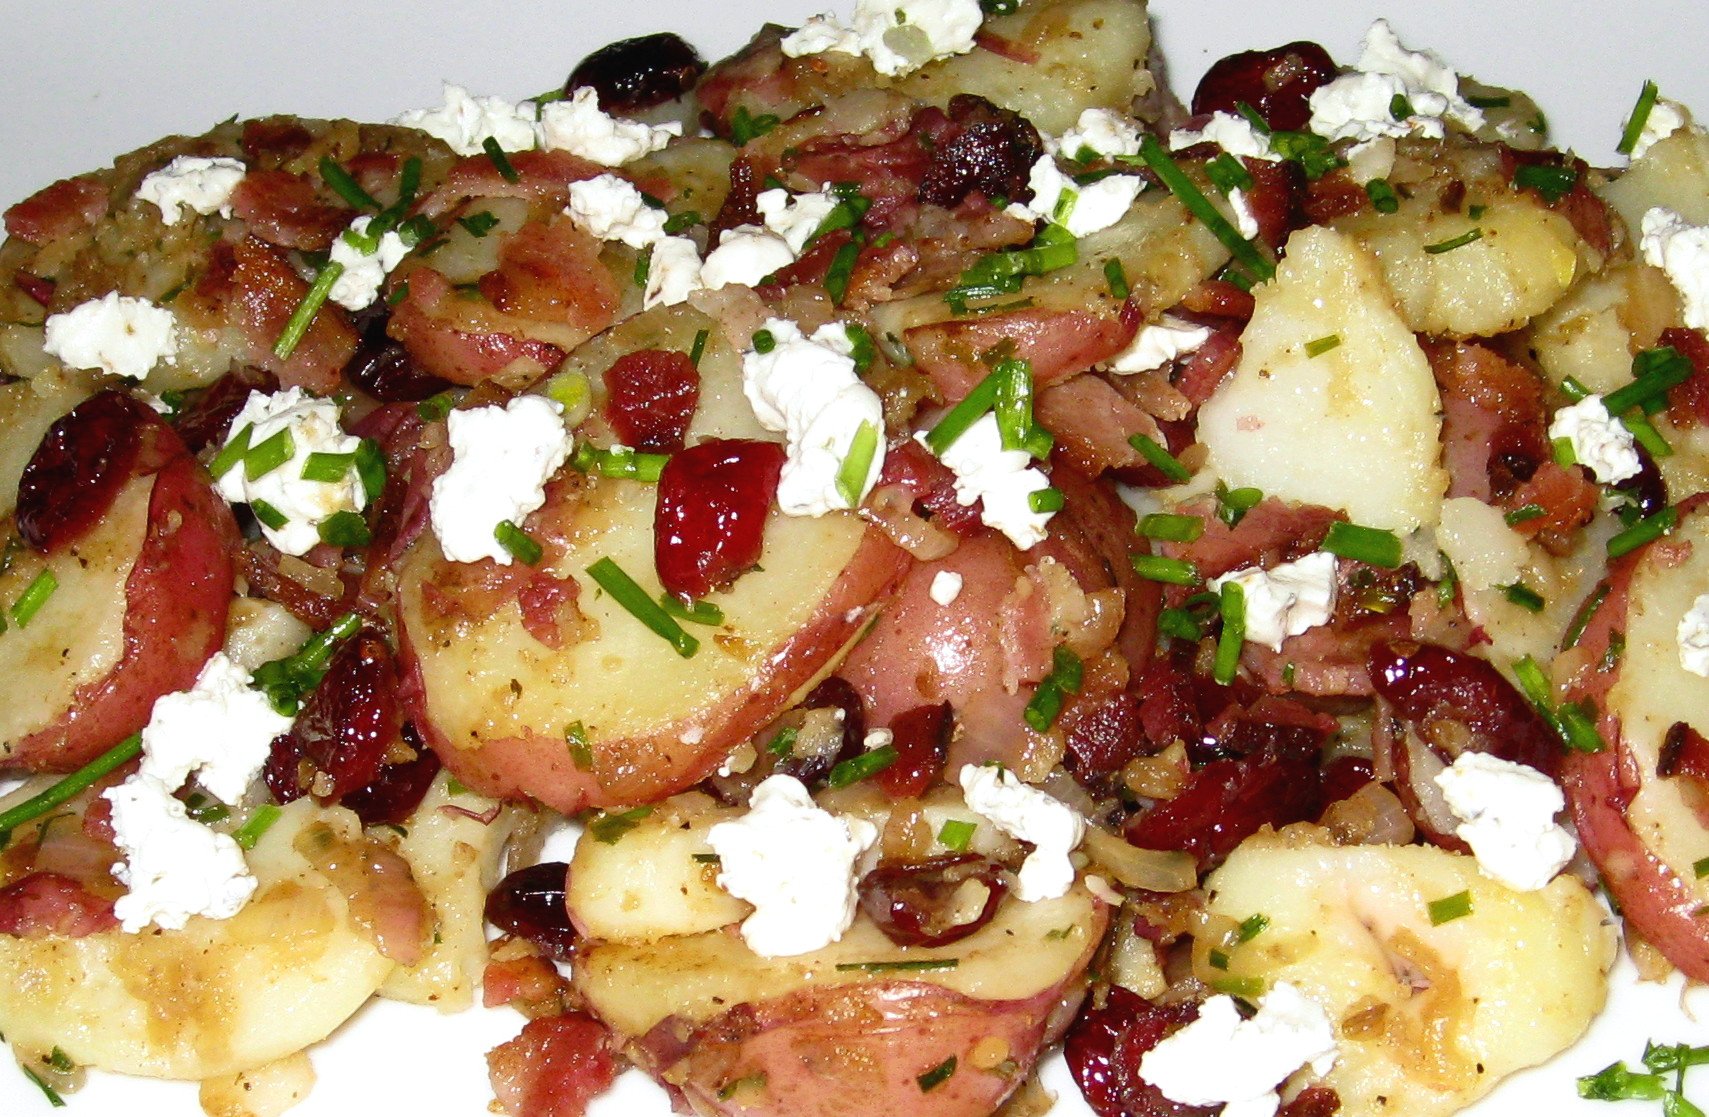 Country Style Potato Salad with Pancetta, Goat Cheese & Dried Cranberries